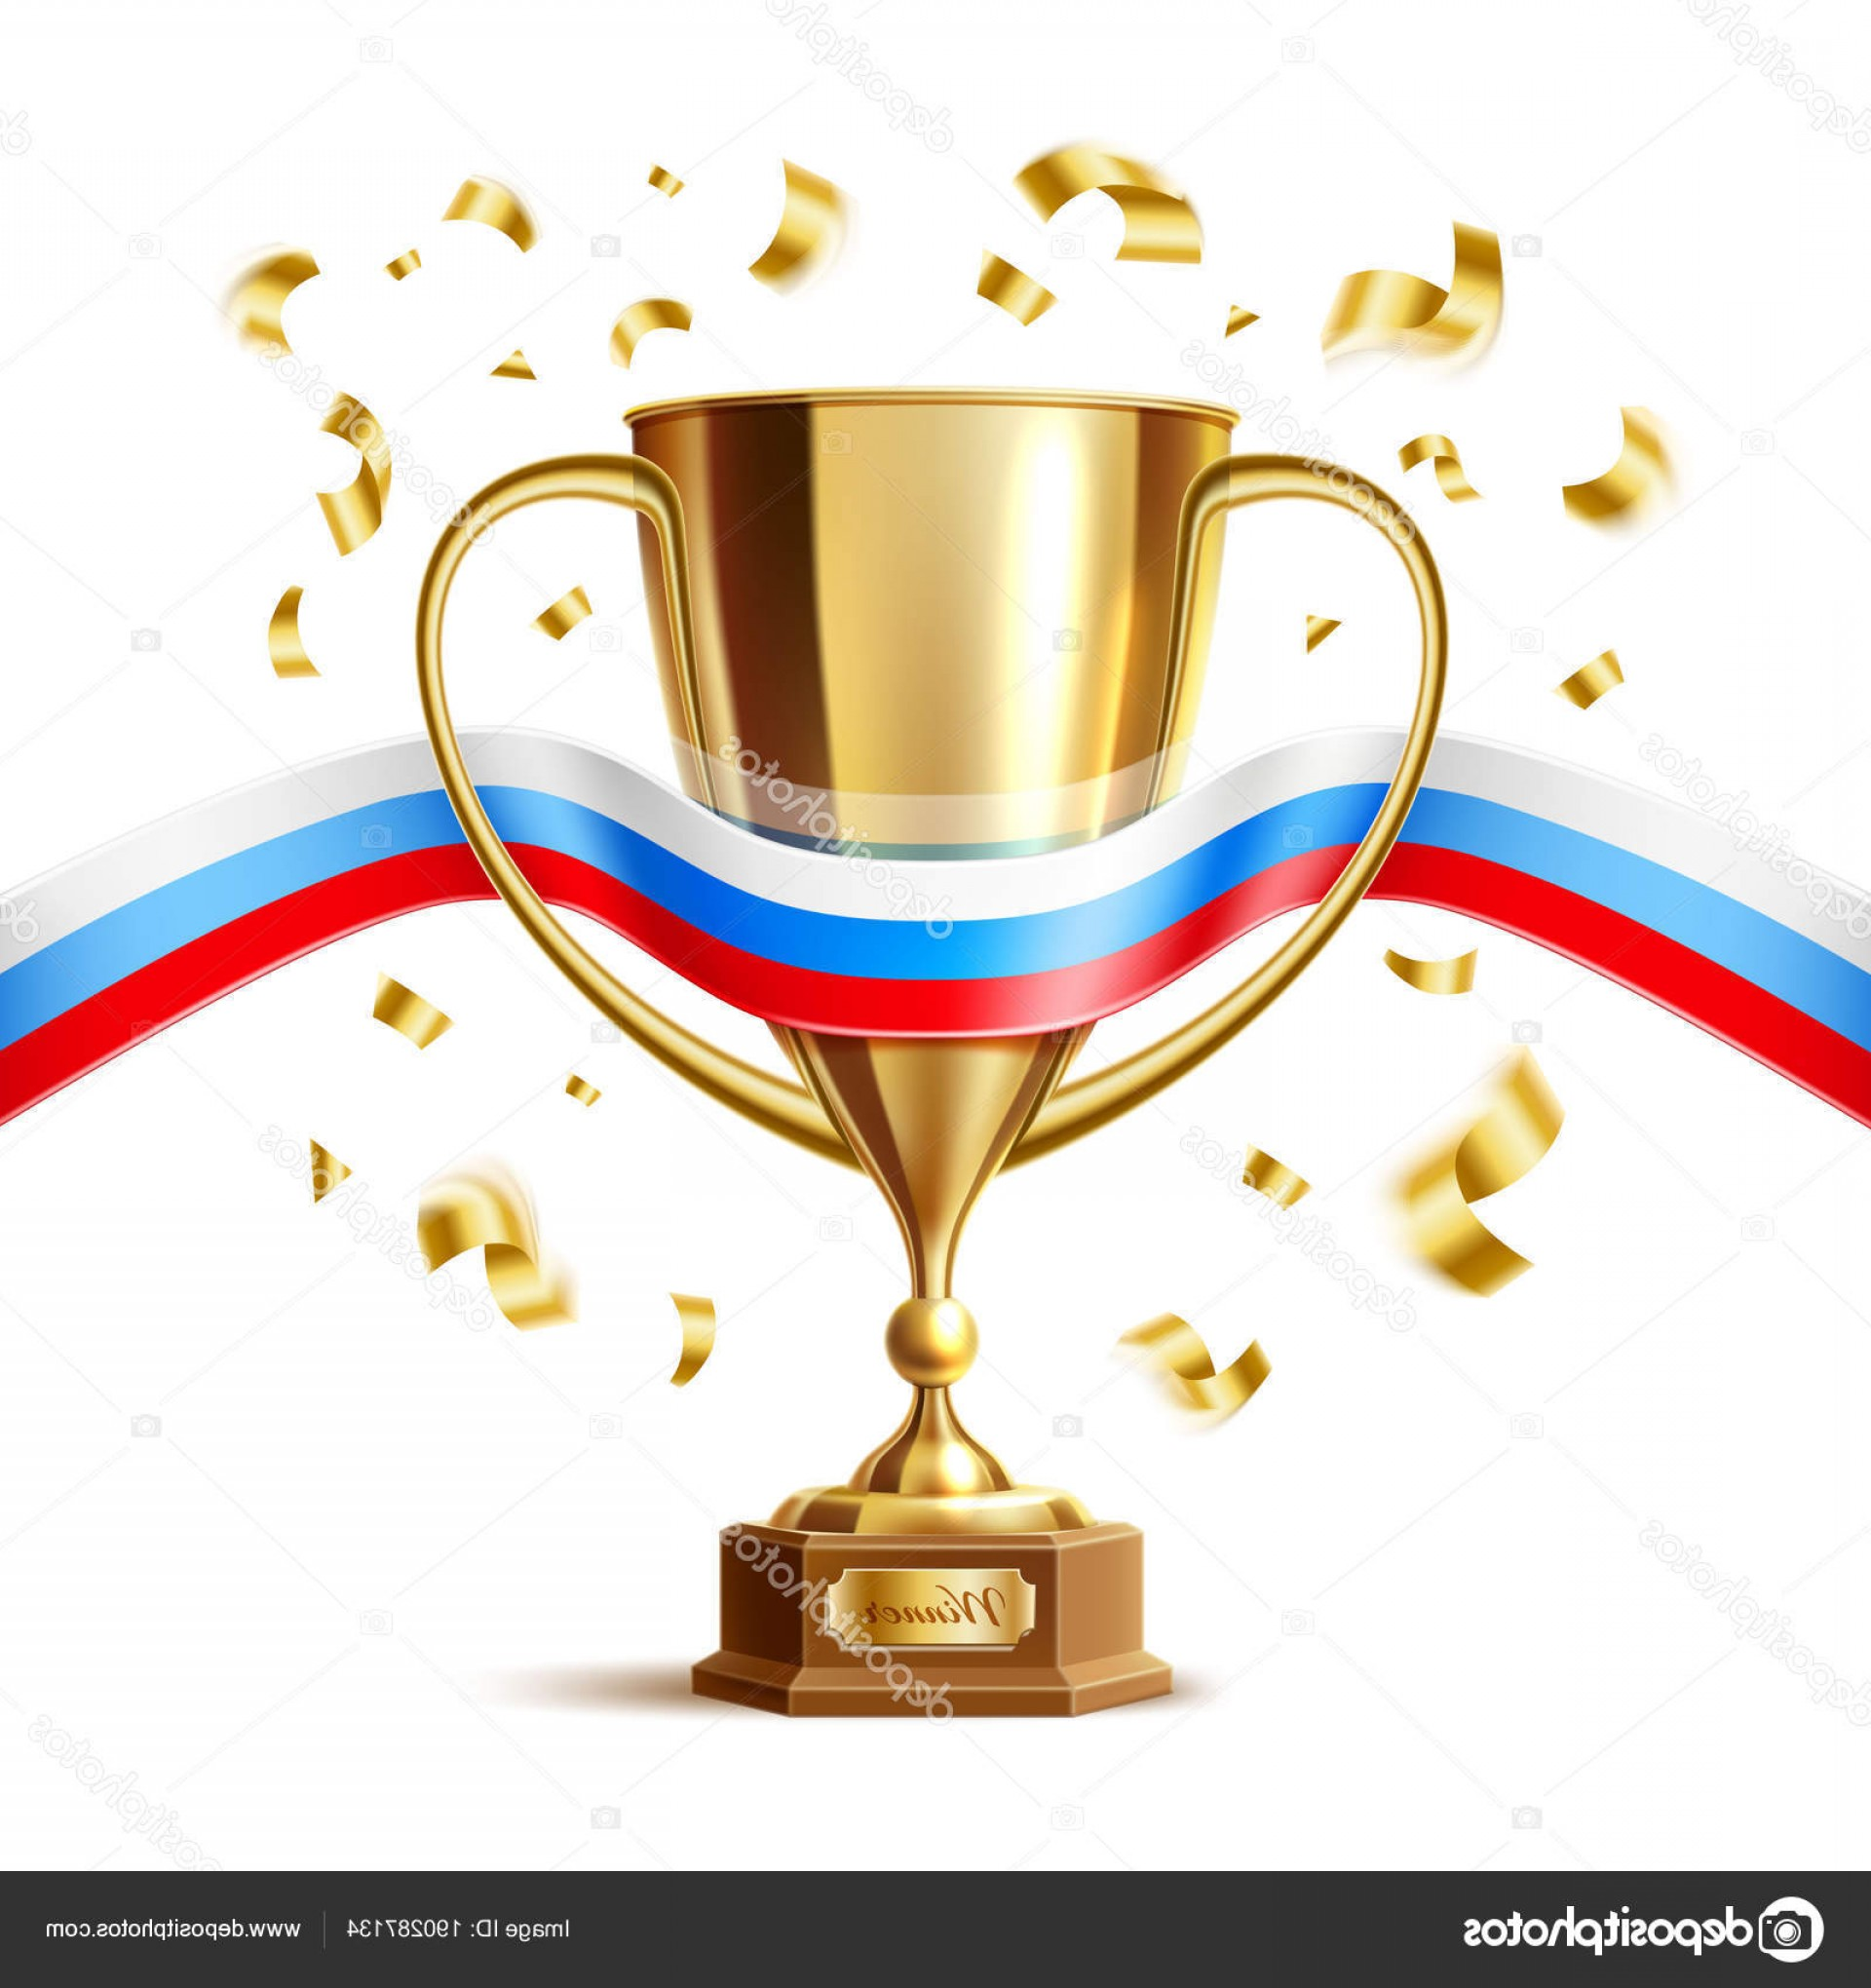 Gold Trophy Vector: Stock Illustration Vector Realistic Golden Trophy Cup